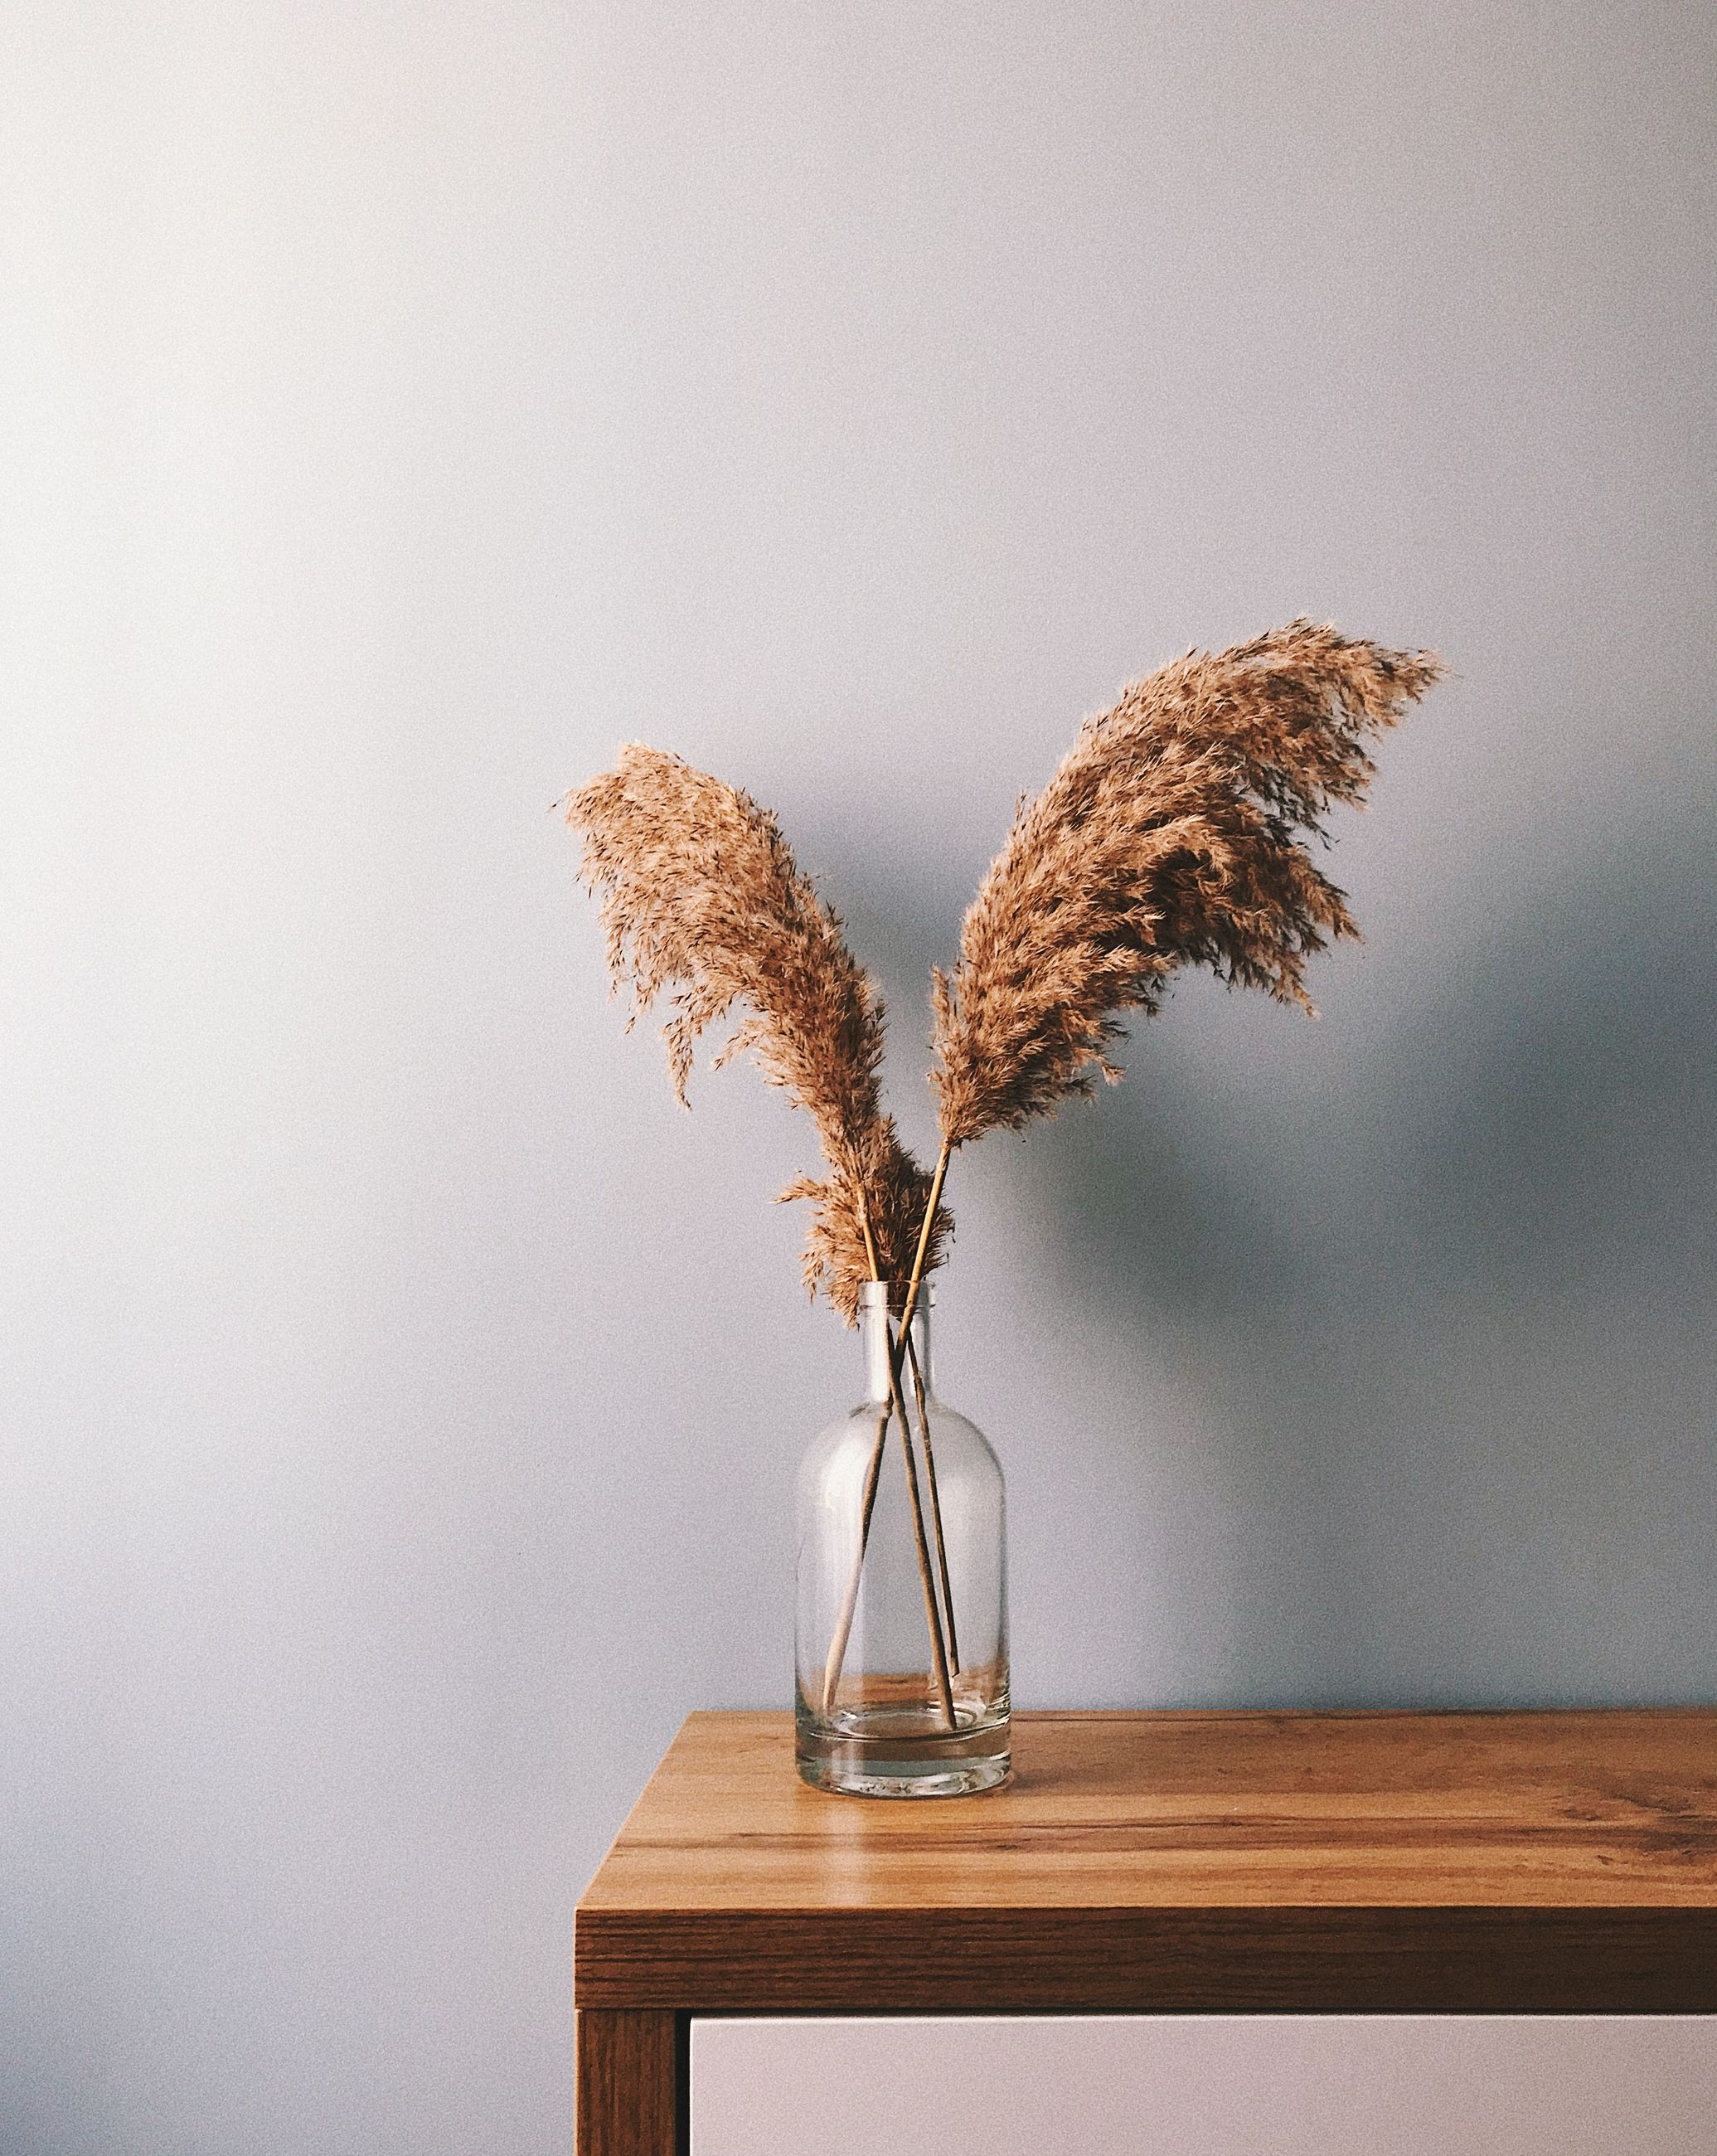 table, vase, plant, indoors, no people, still life, nature, glass - material, wood - material, copy space, wall - building feature, close-up, flowering plant, flower, decoration, vulnerability, fragility, softness